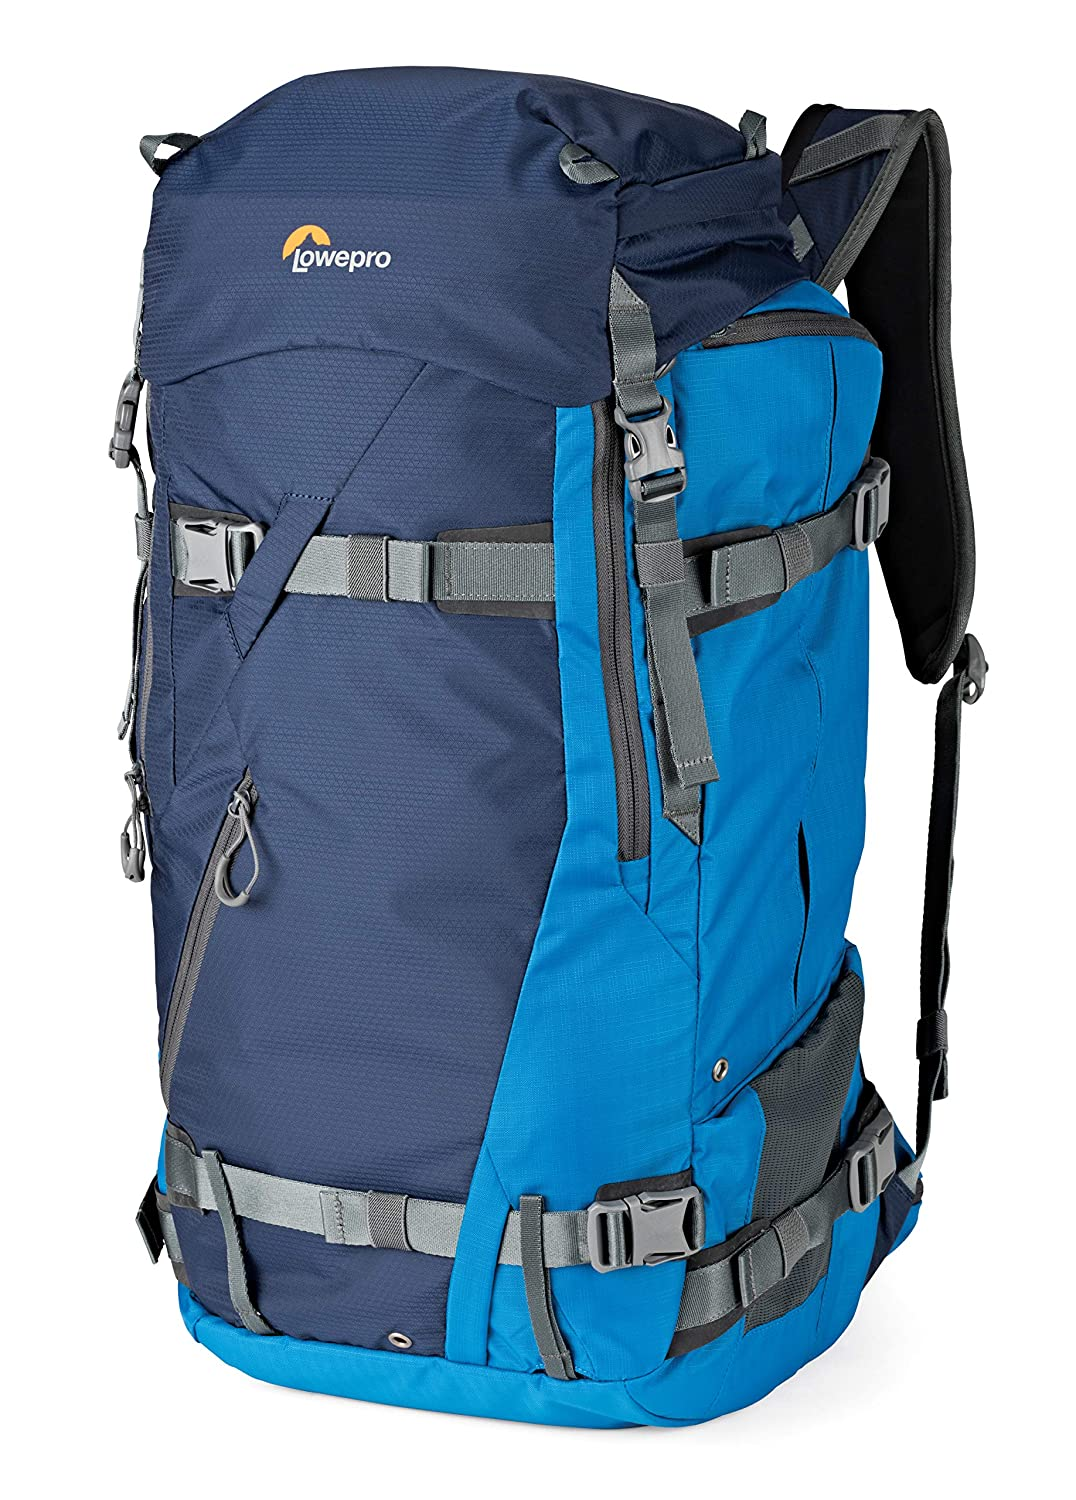 c164d7ba9a03 Amazon.com: Lowepro Powder BP 500 AW Outdoor Backpack (Blue) for ...